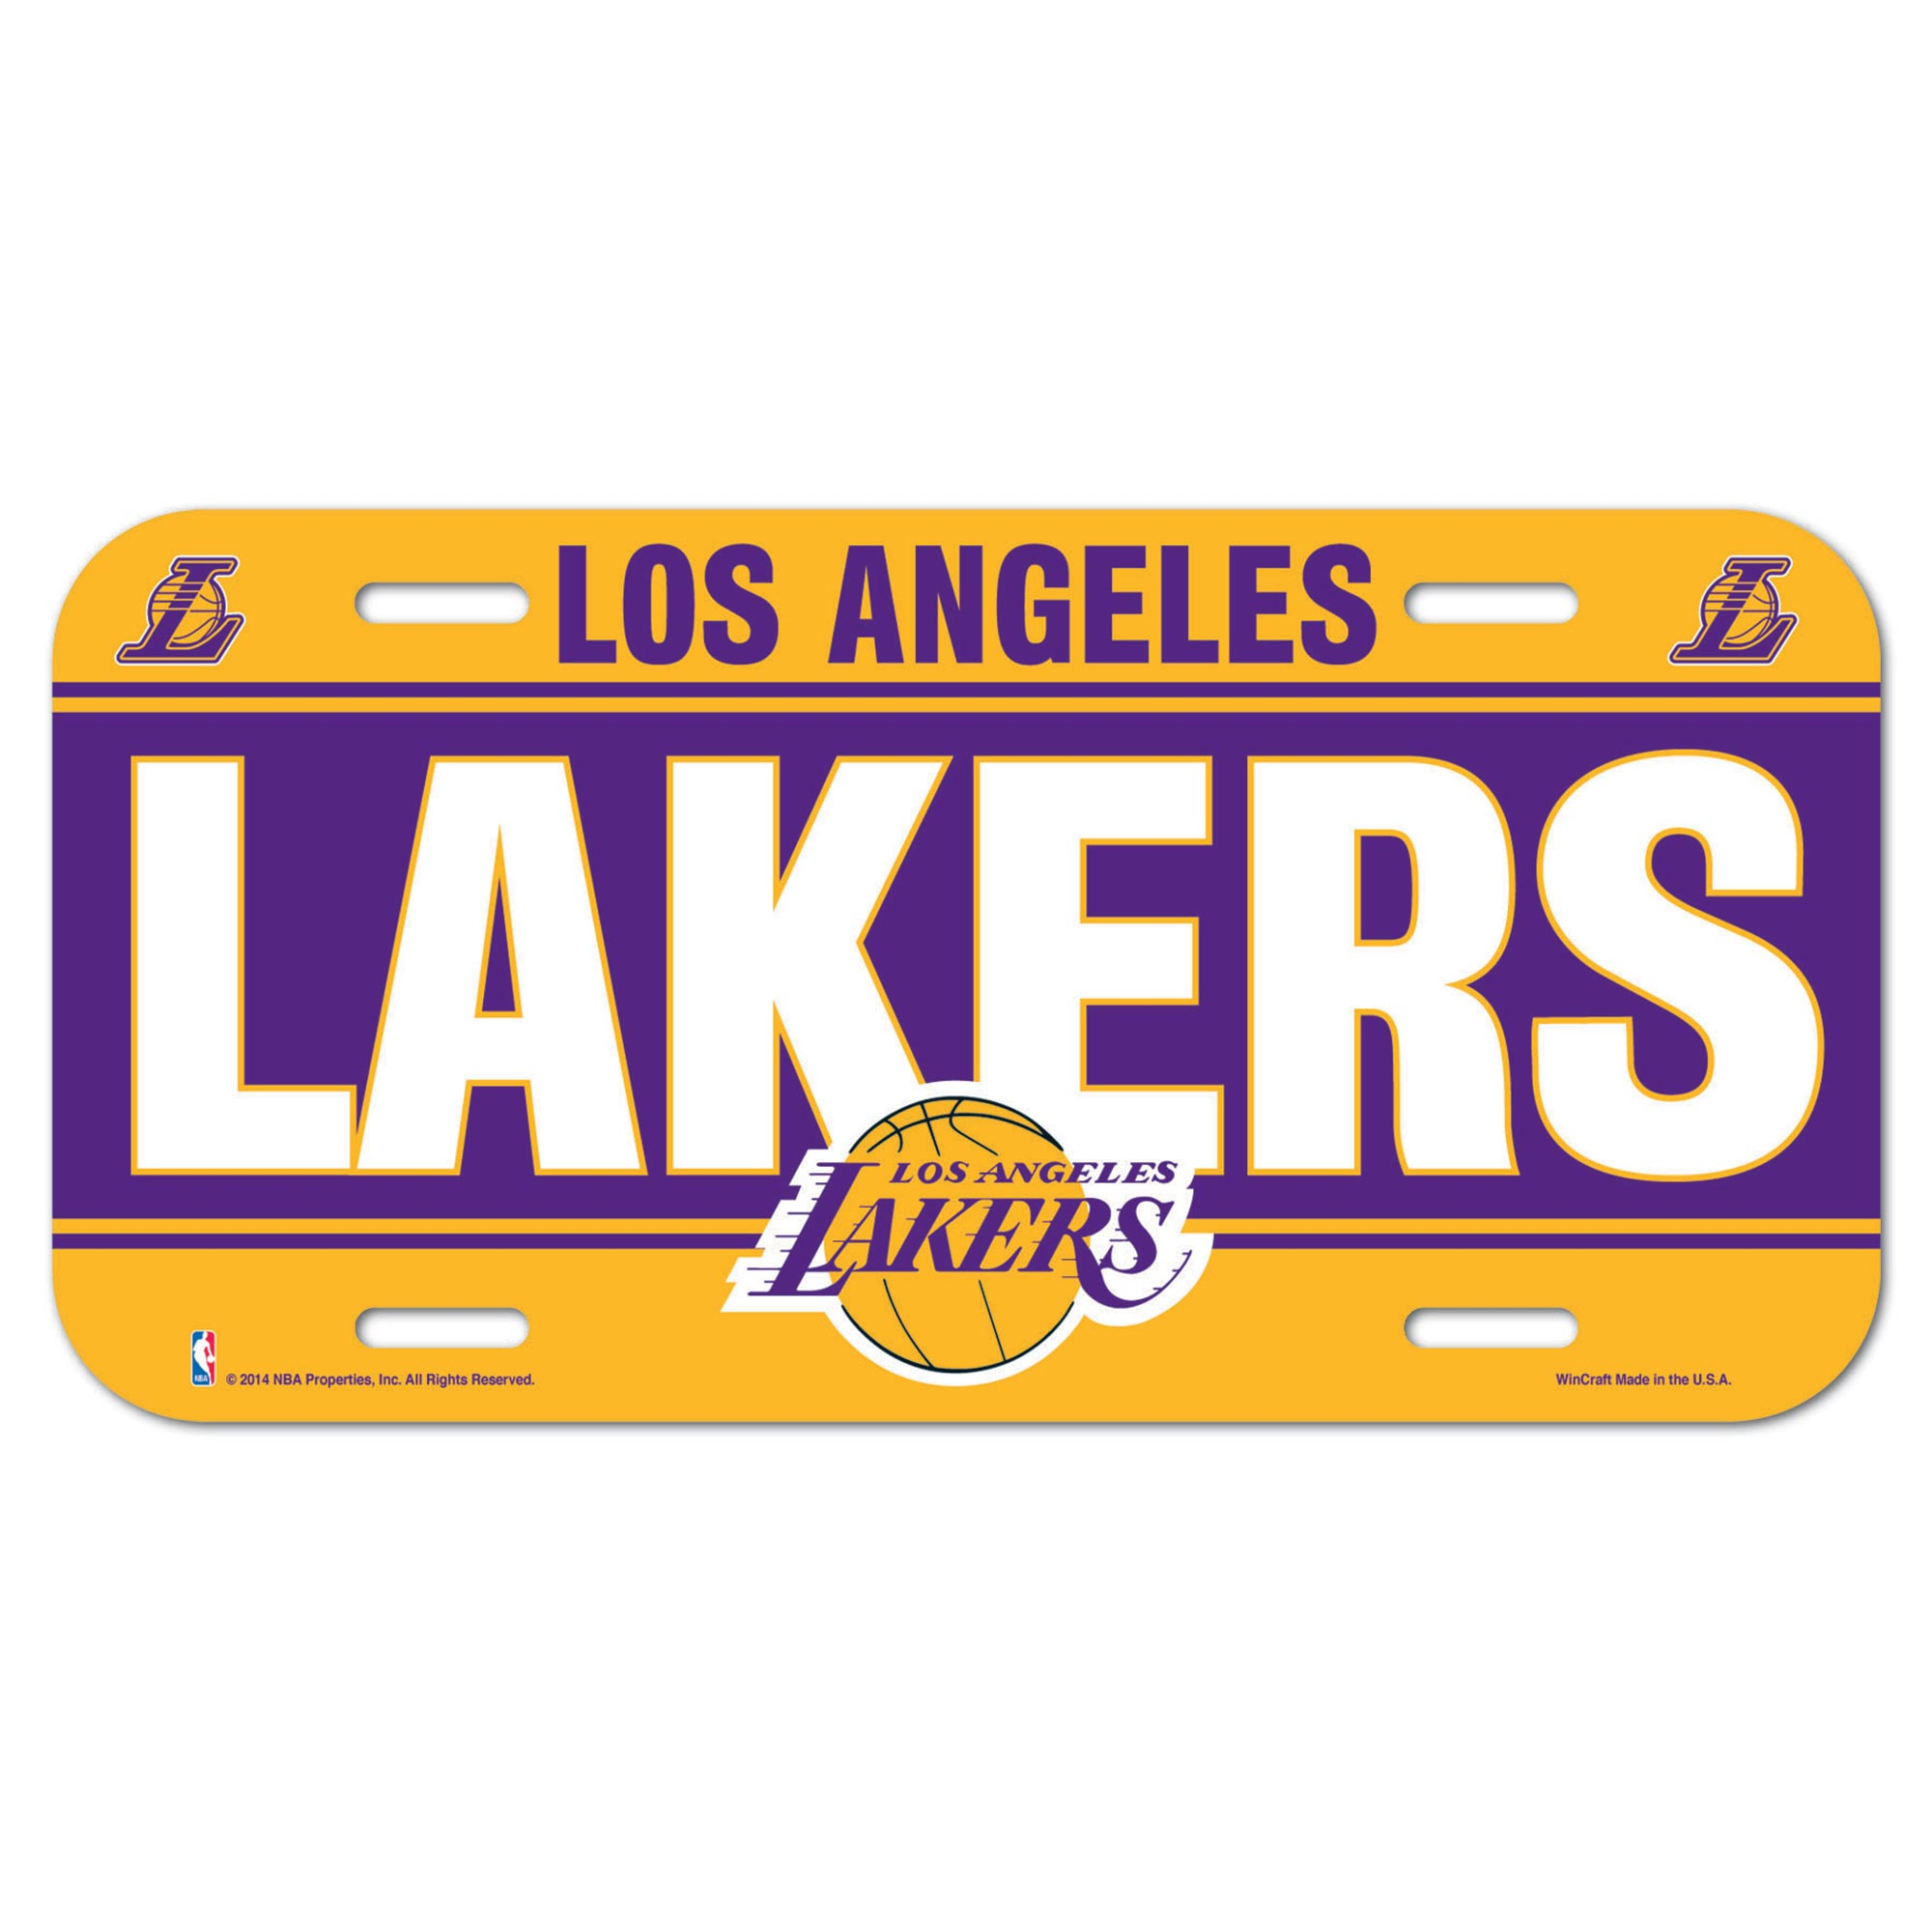 Los Angeles Lakers Wall License Plate